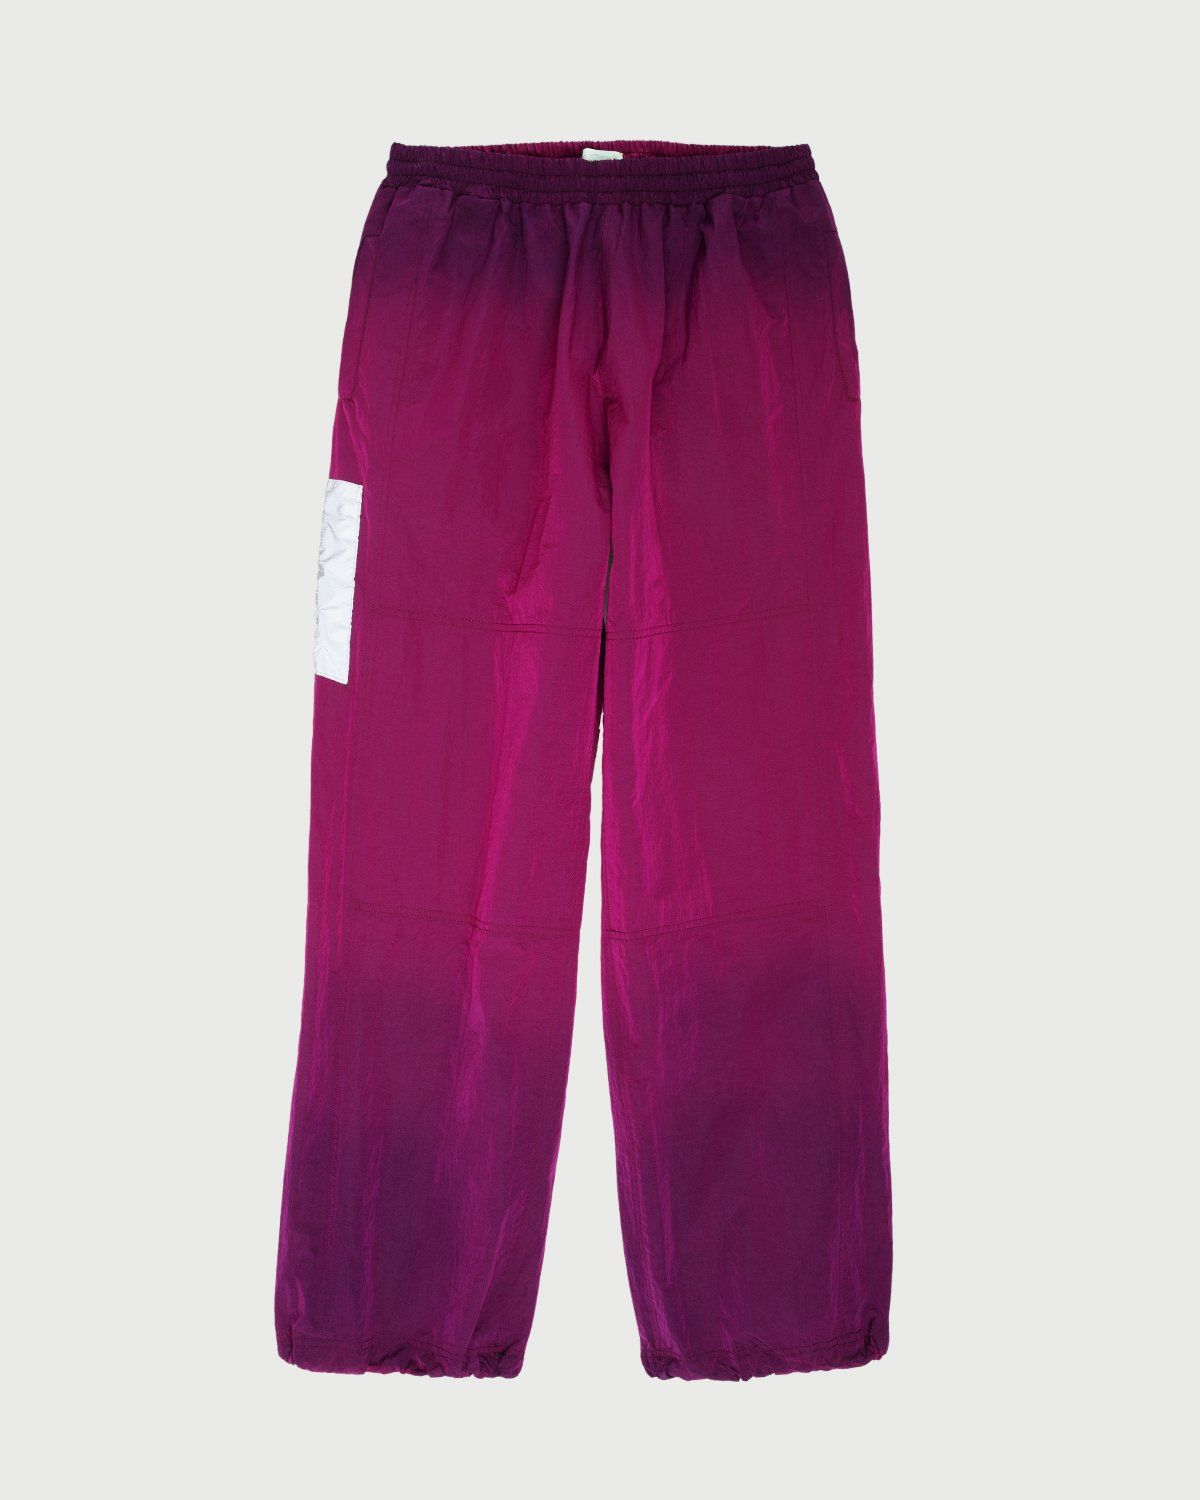 Aries - Ombre Dyed Track Pants Fuchsia - Image 1